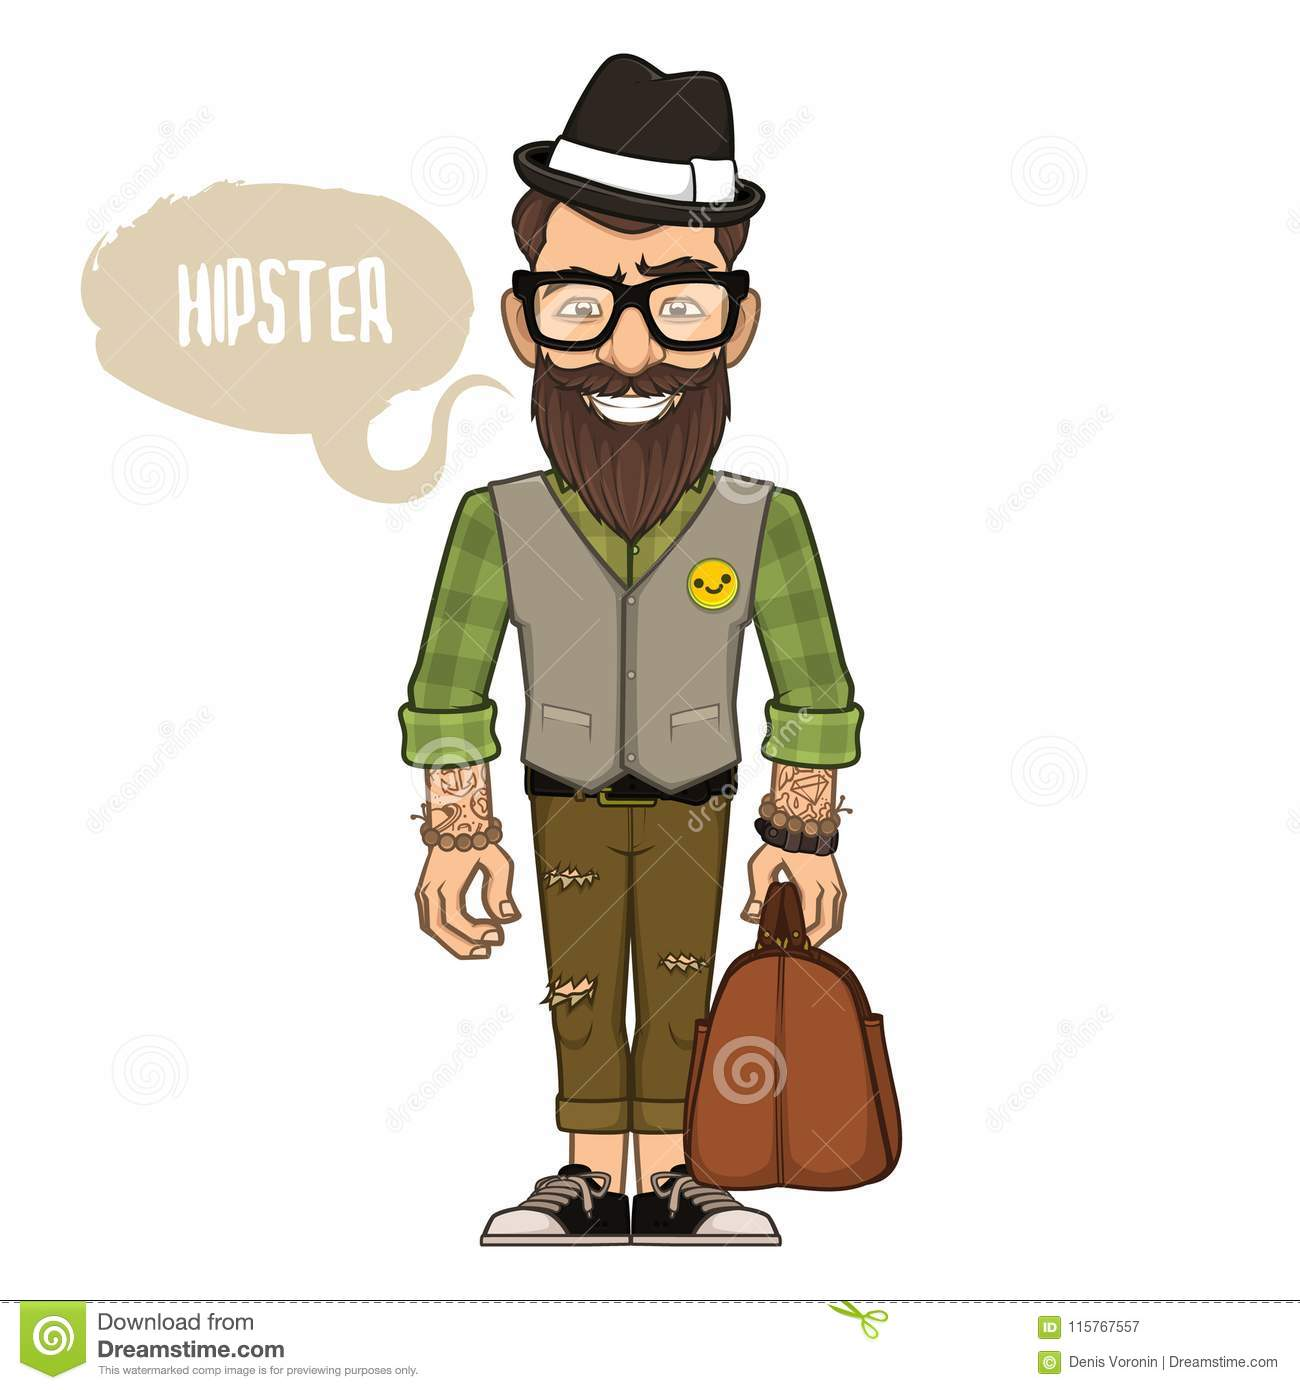 Hipster in a hat and glasses